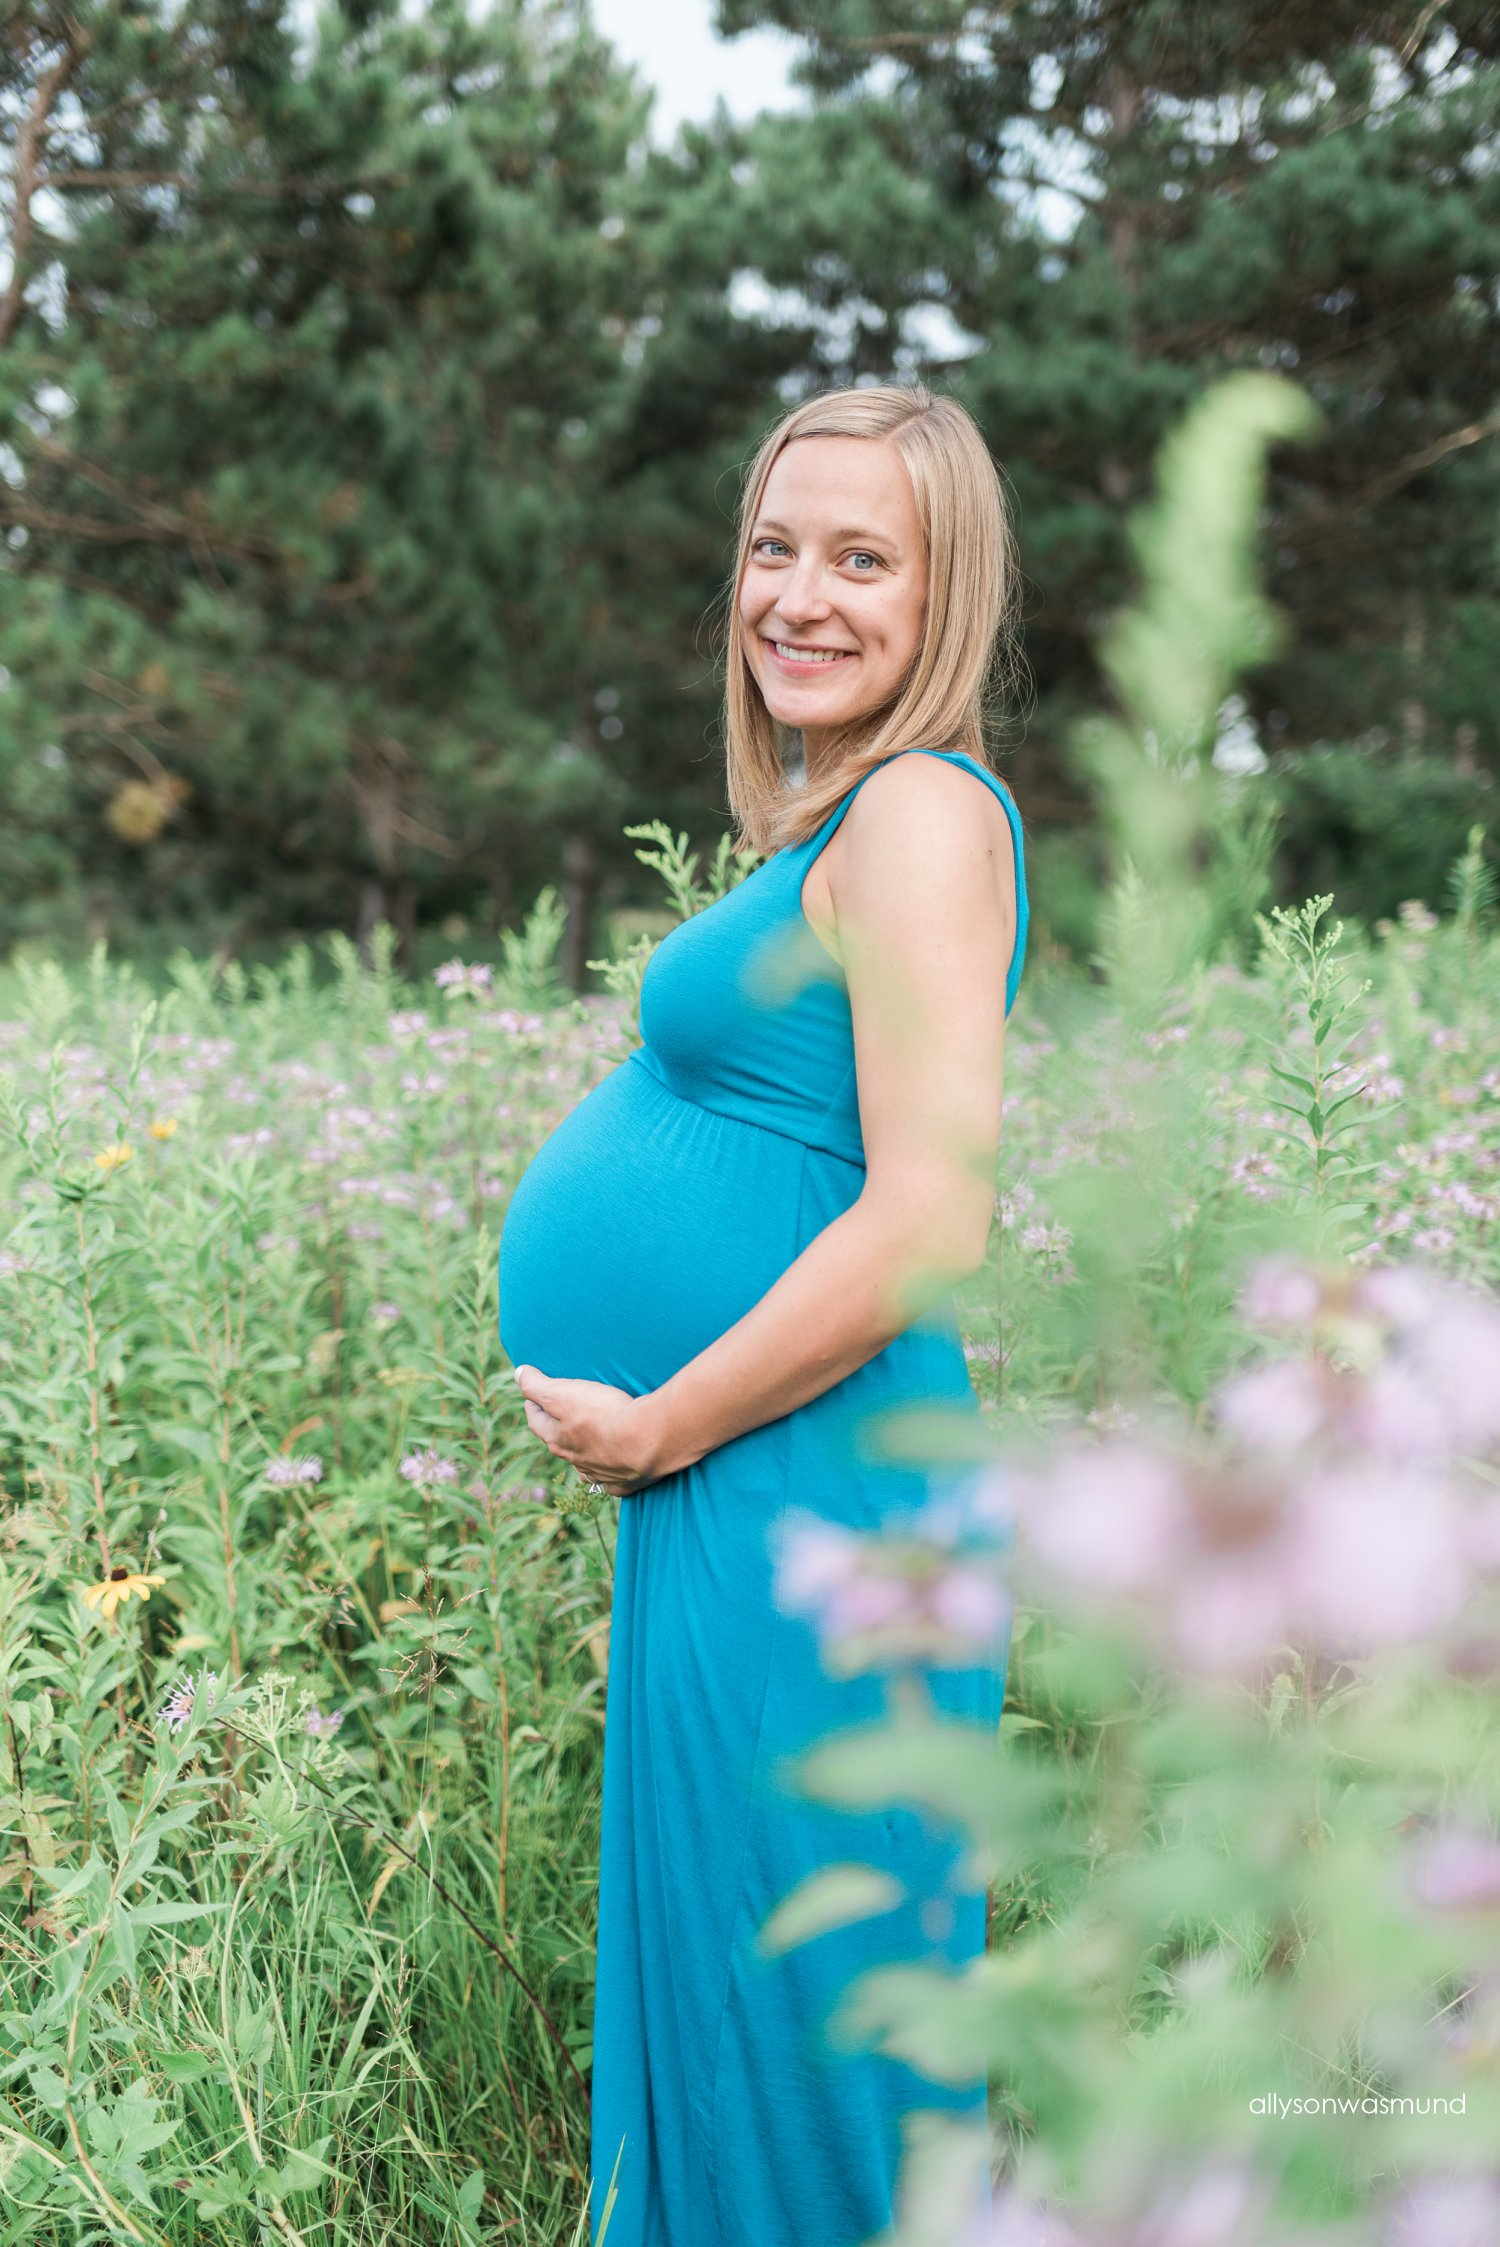 st-paul-mn-outdoor-film-maternity-photographer_0137.jpg